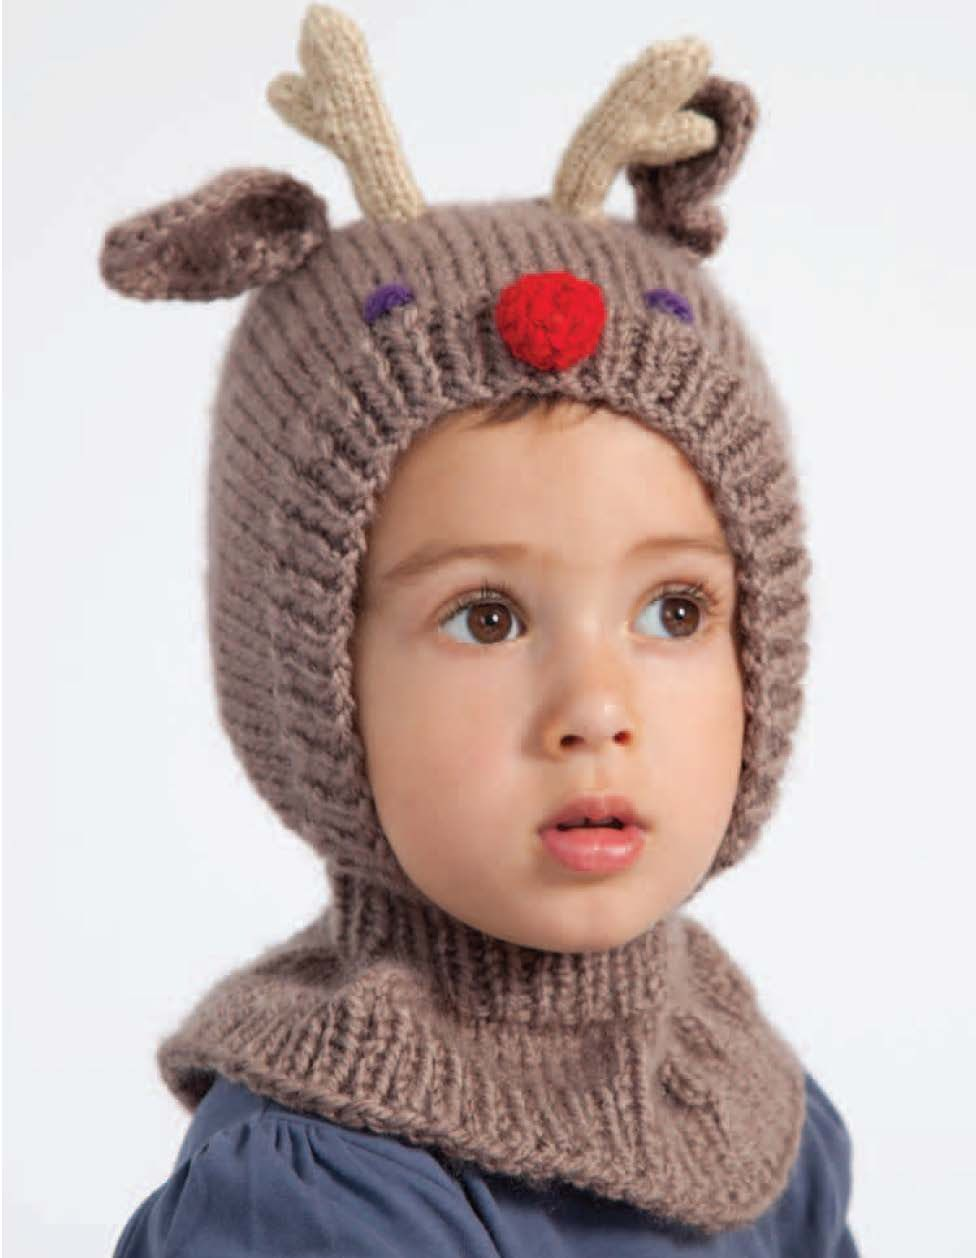 Dearest Reindeer hat from Adorable Animal Knits for Little People by Nuriya  Khegay www.searchpress.com book 9781844489718 adorable-animal-knits-for-little-  ... a8c375b2d4b1